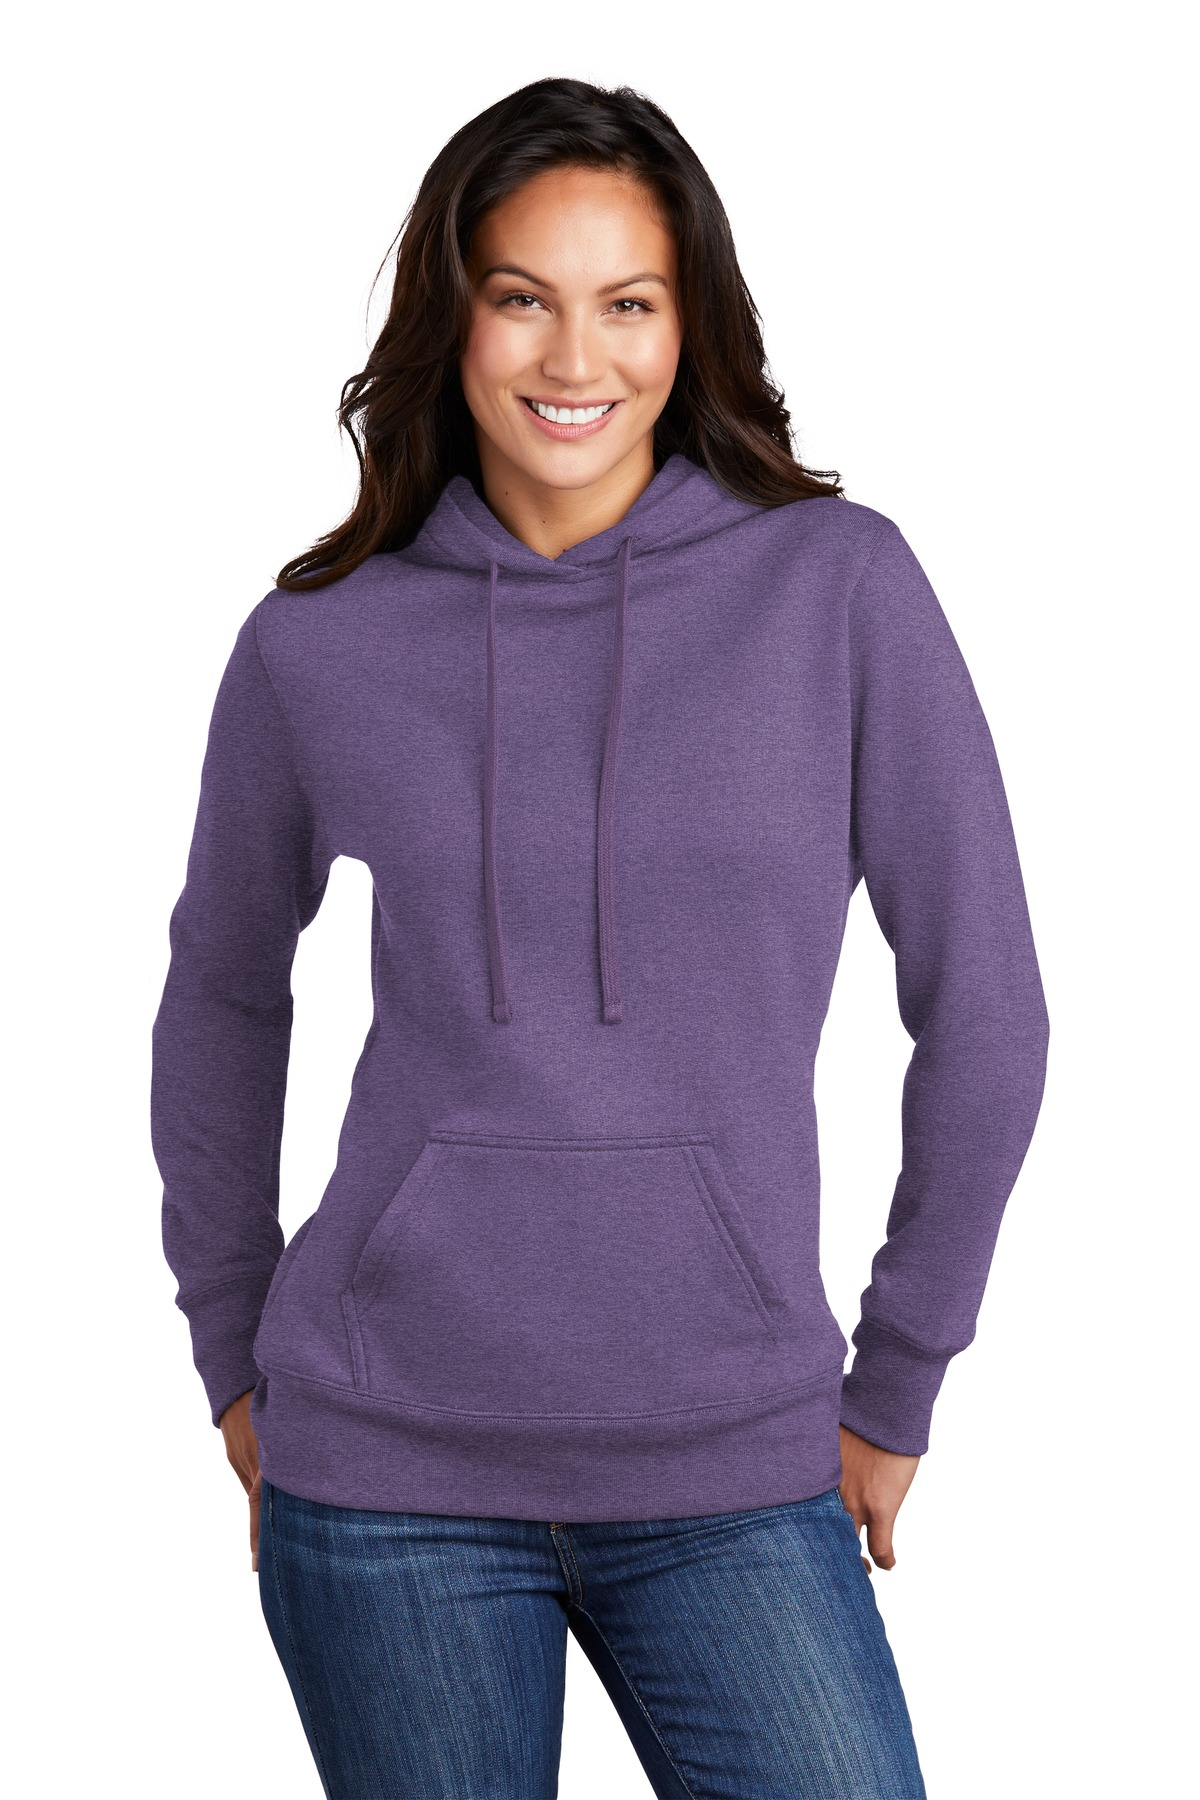 Port & Company  ®  Ladies Core Fleece Pullover Hooded Sweatshirt LPC78H - Heather Purple